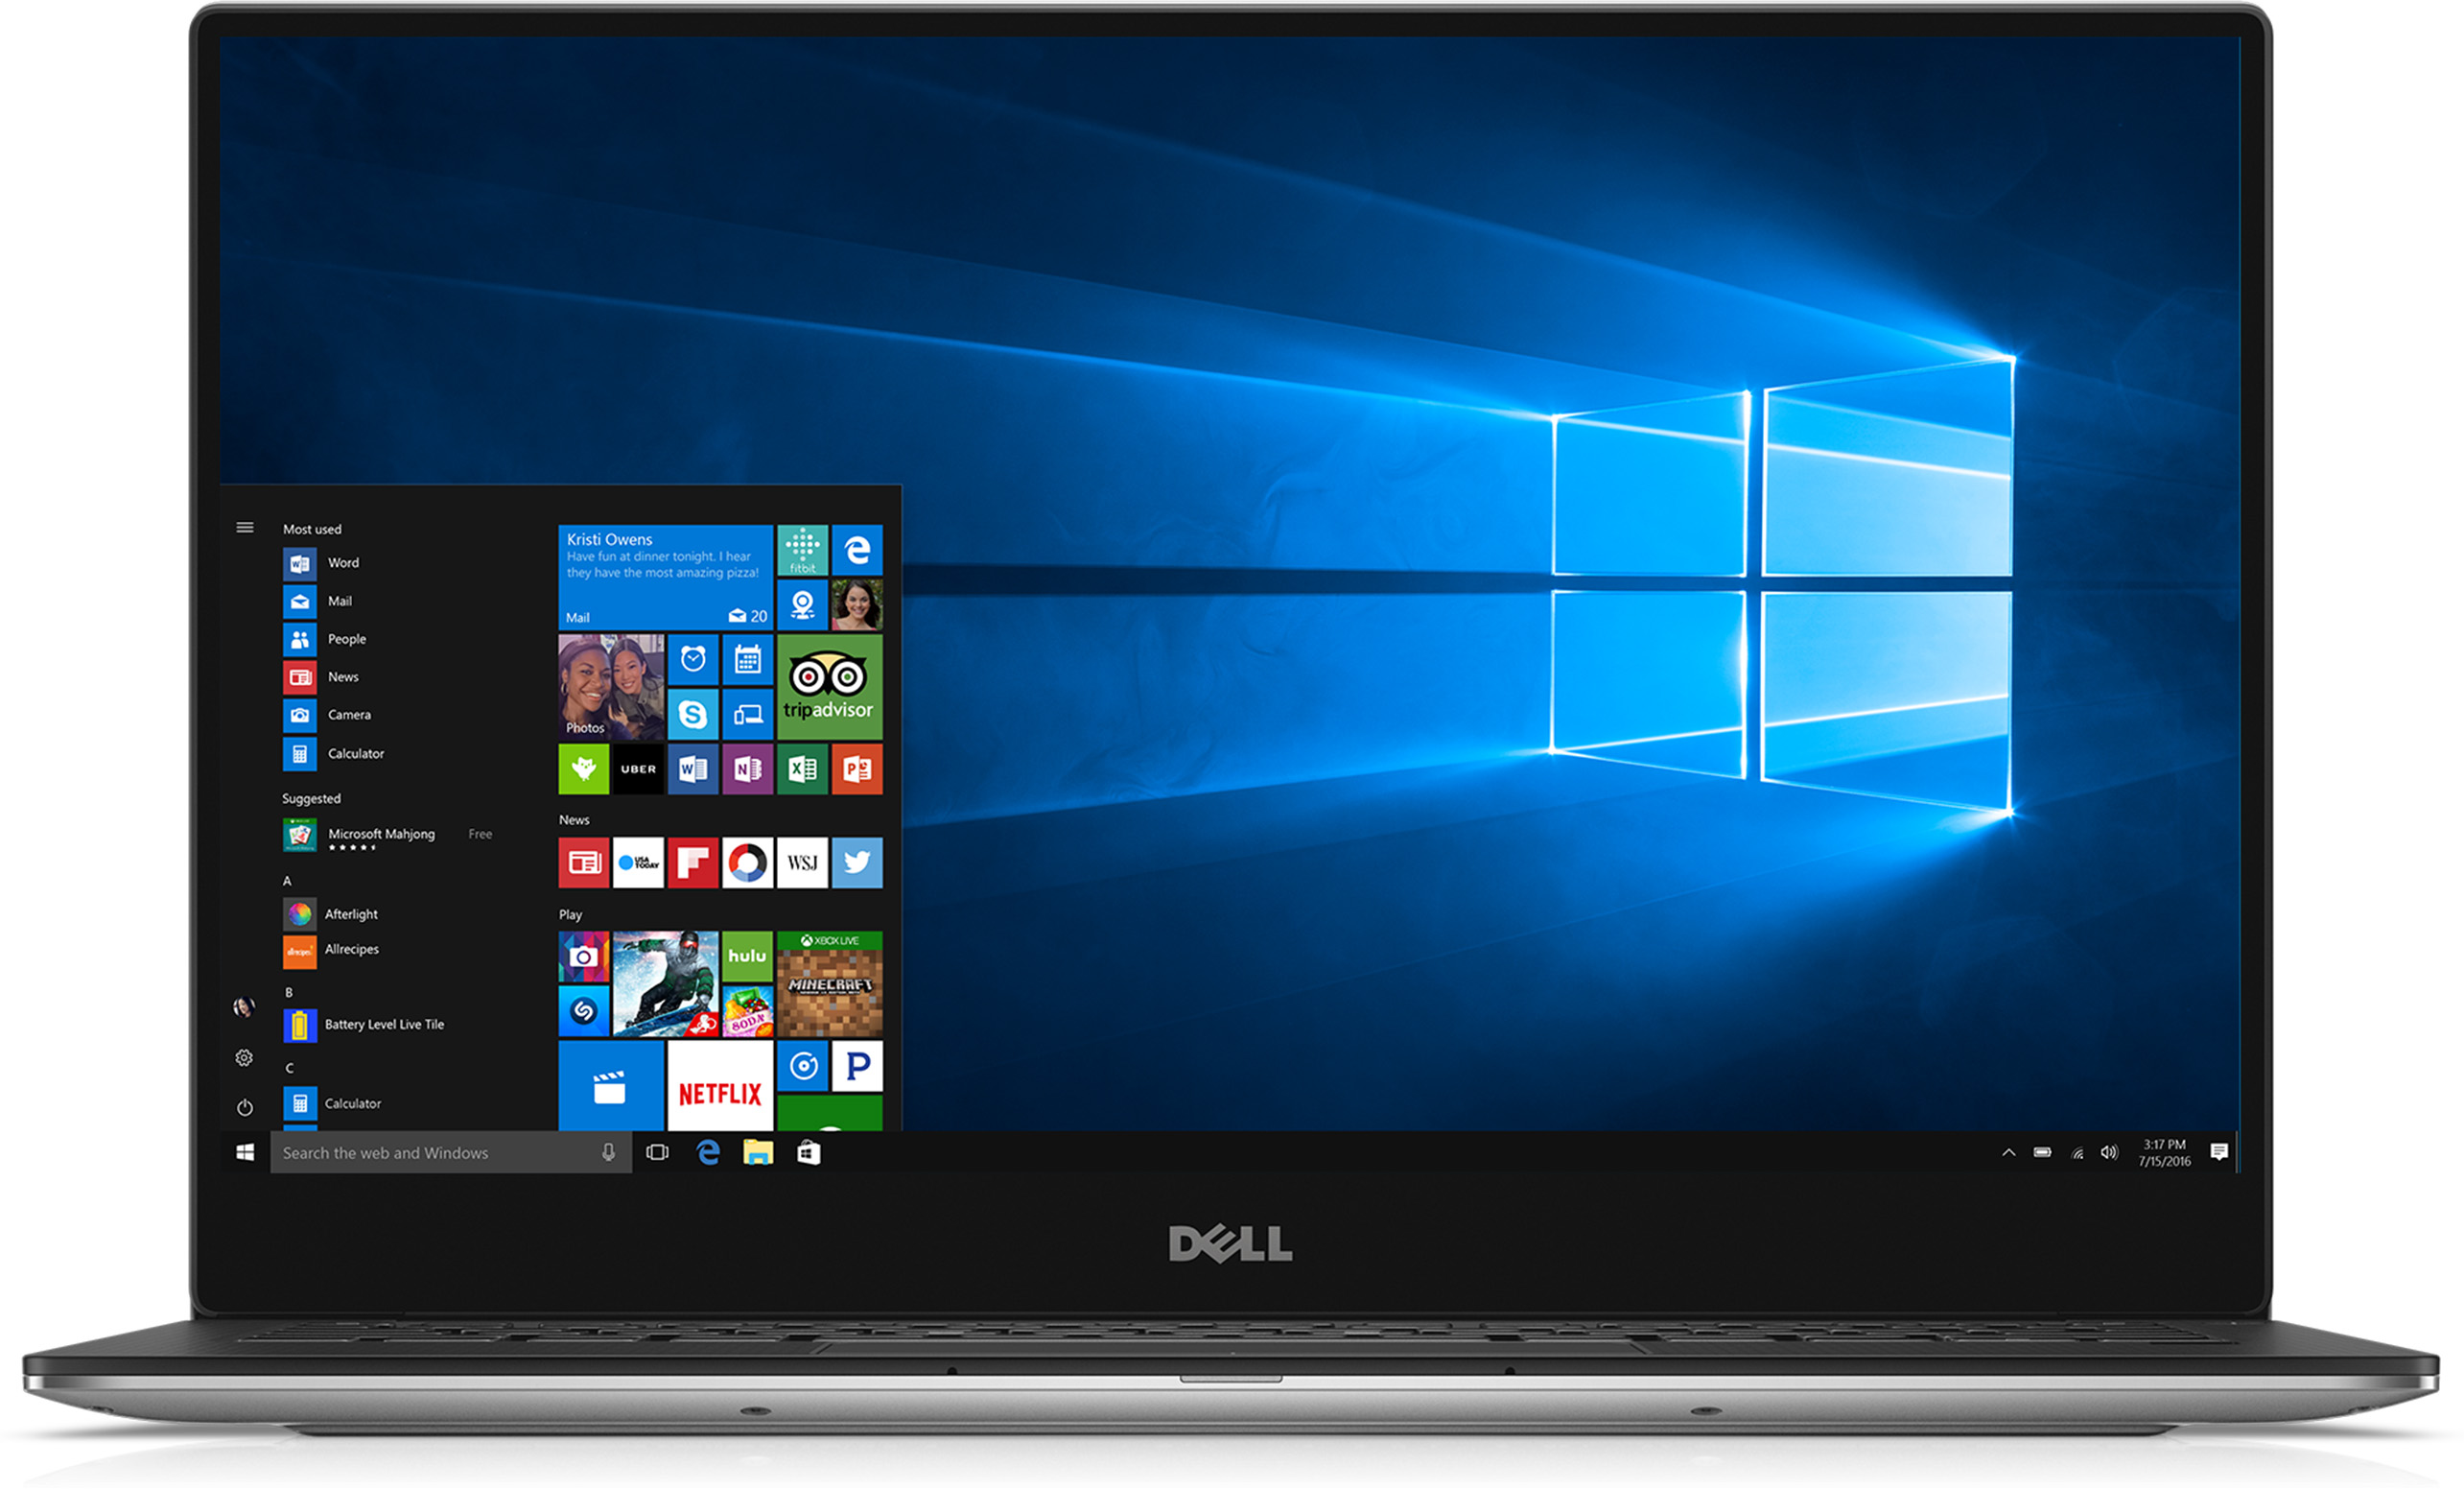 Dell XPS 13 9360 XPS9360-5203SLV-PUS Laptop• 13.3-inch Full HD touchscreen • Intel i5 8th Gen • 8GB memory/128GB SSD • Up to 11 hours battery life